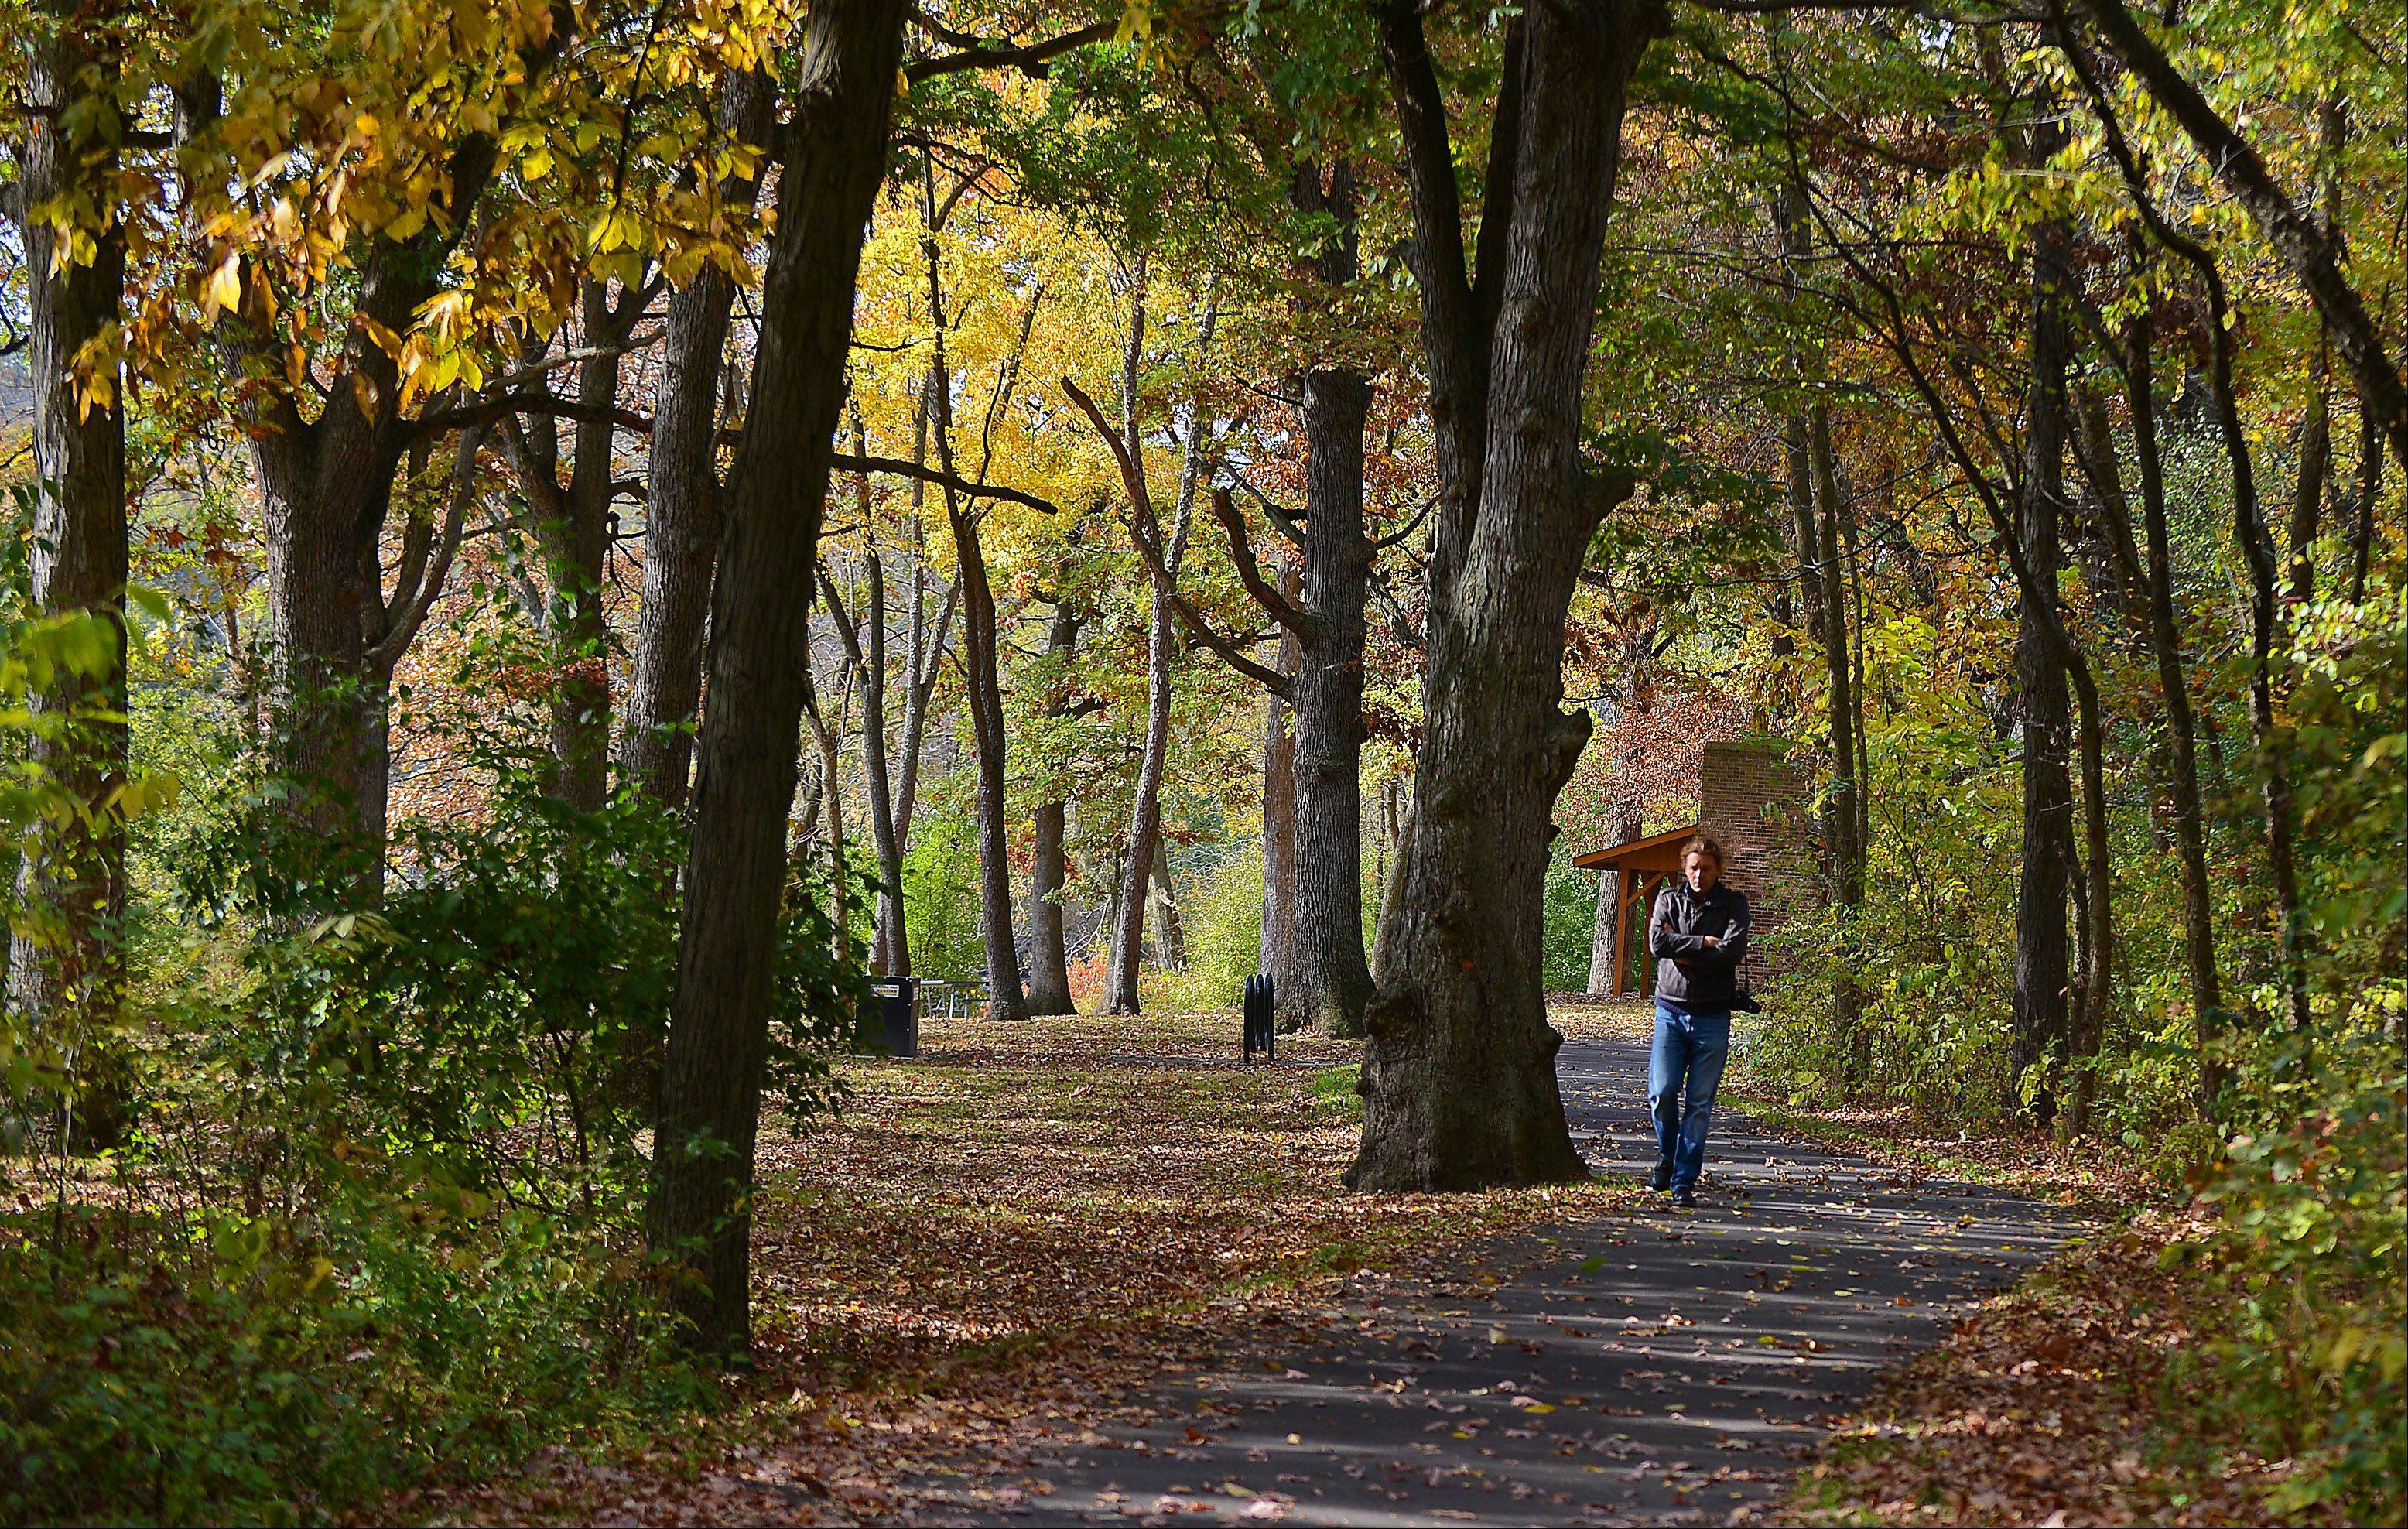 Ra Dymny of St. Charles, camera in tow, takes in the fall colors during a walk through the Jon J. Duerr Forest Preserve in South Elgin Monday.